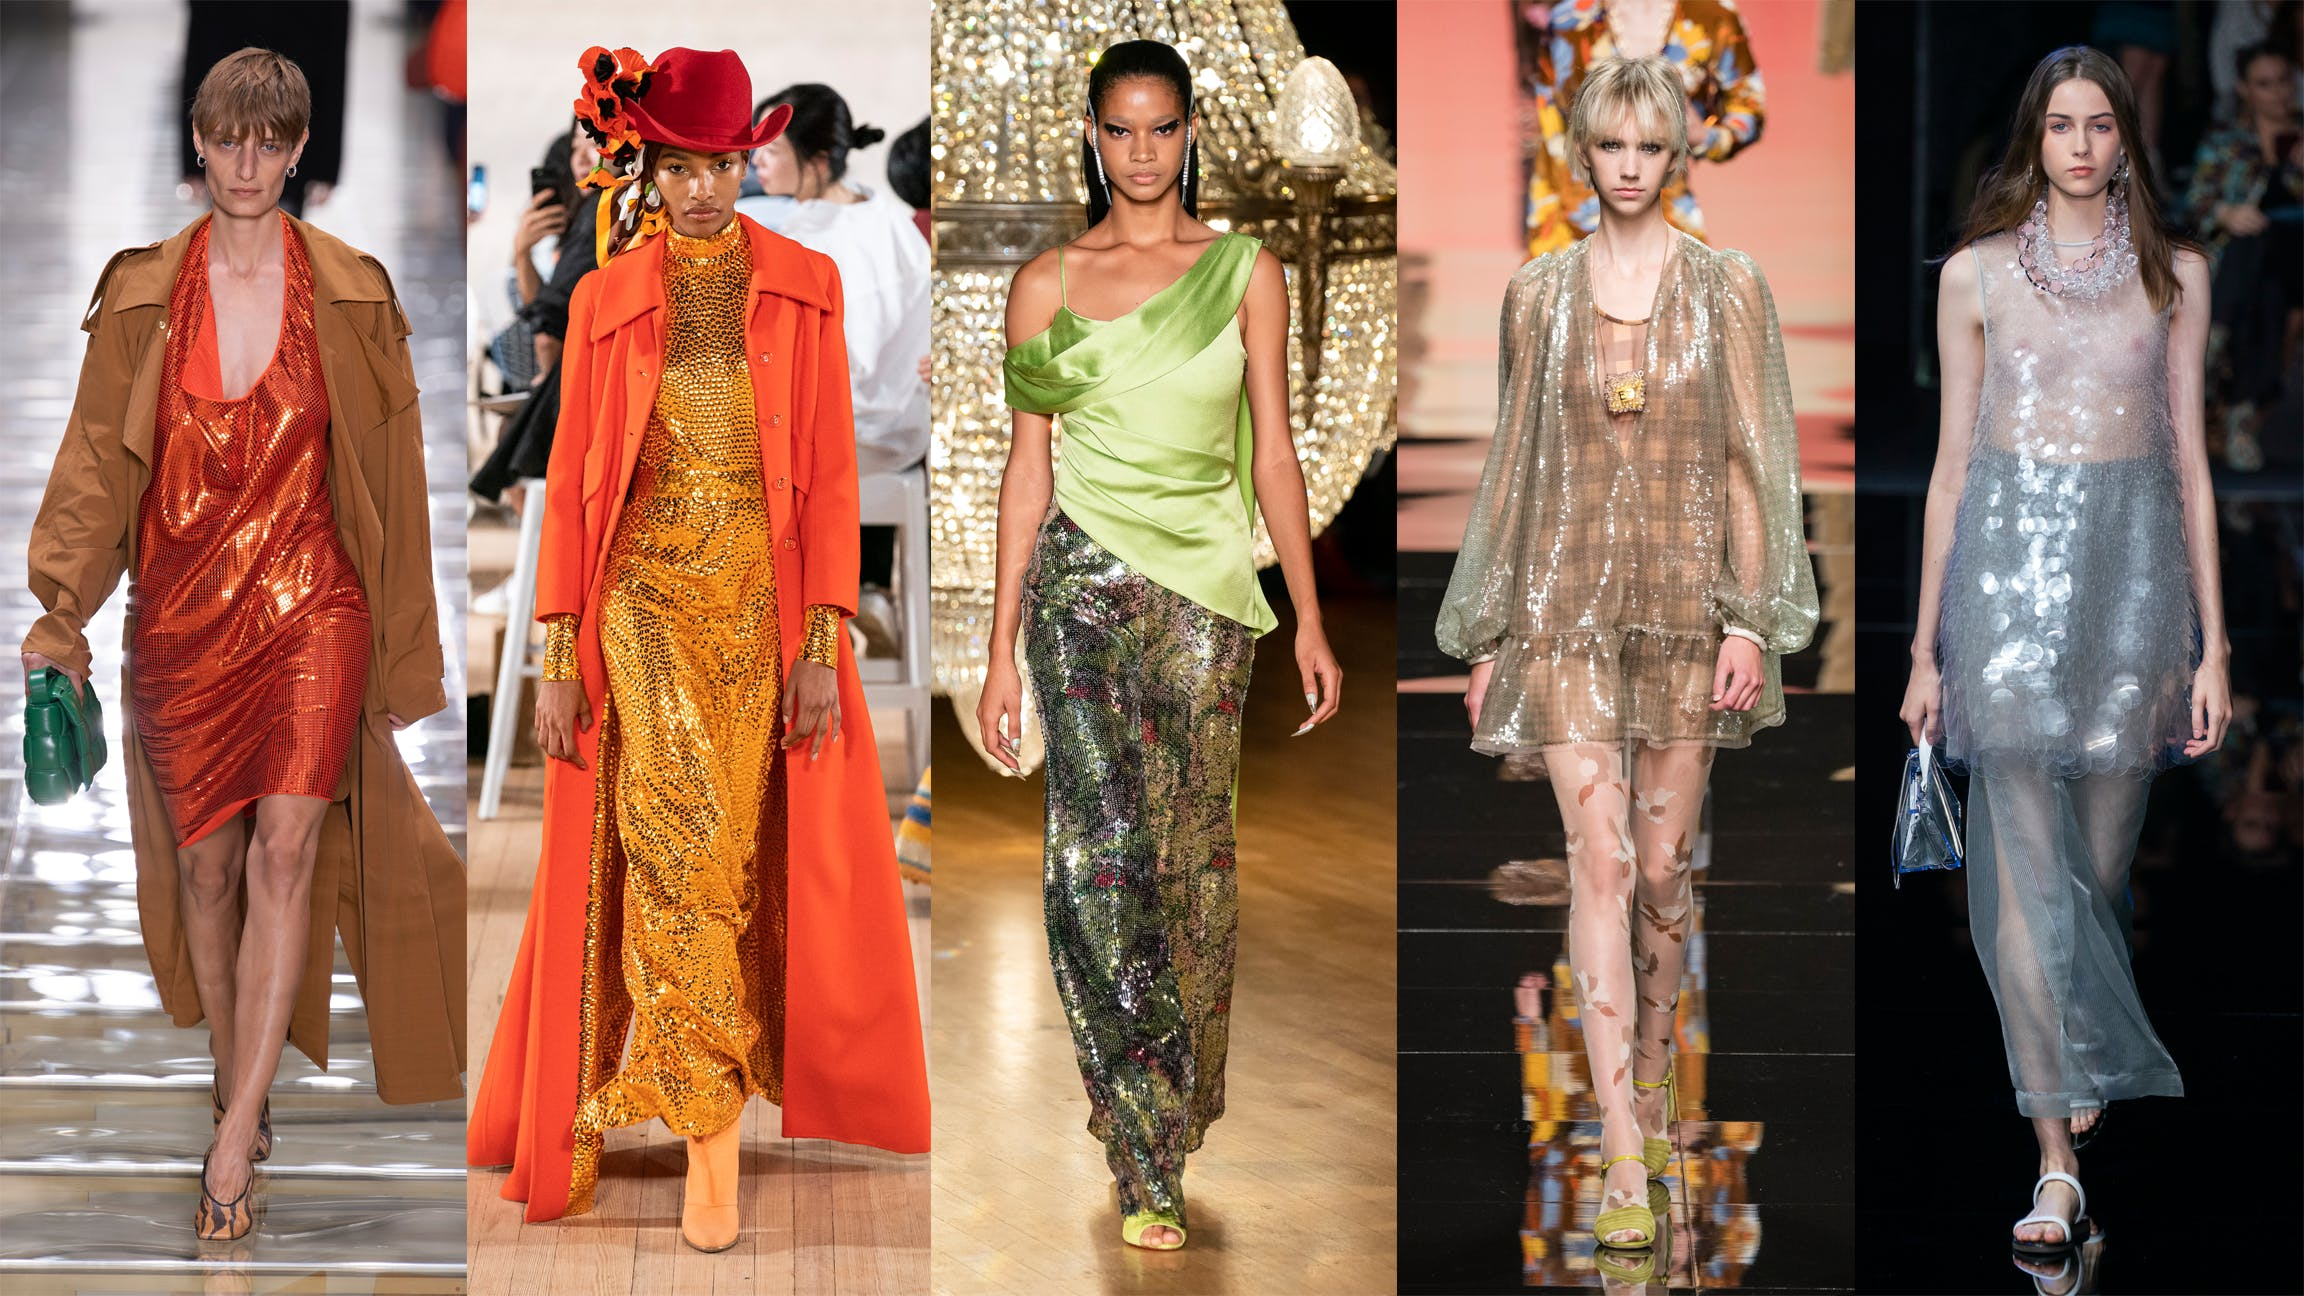 5 Standout Trends That Ruled the Spring 2020 Runways